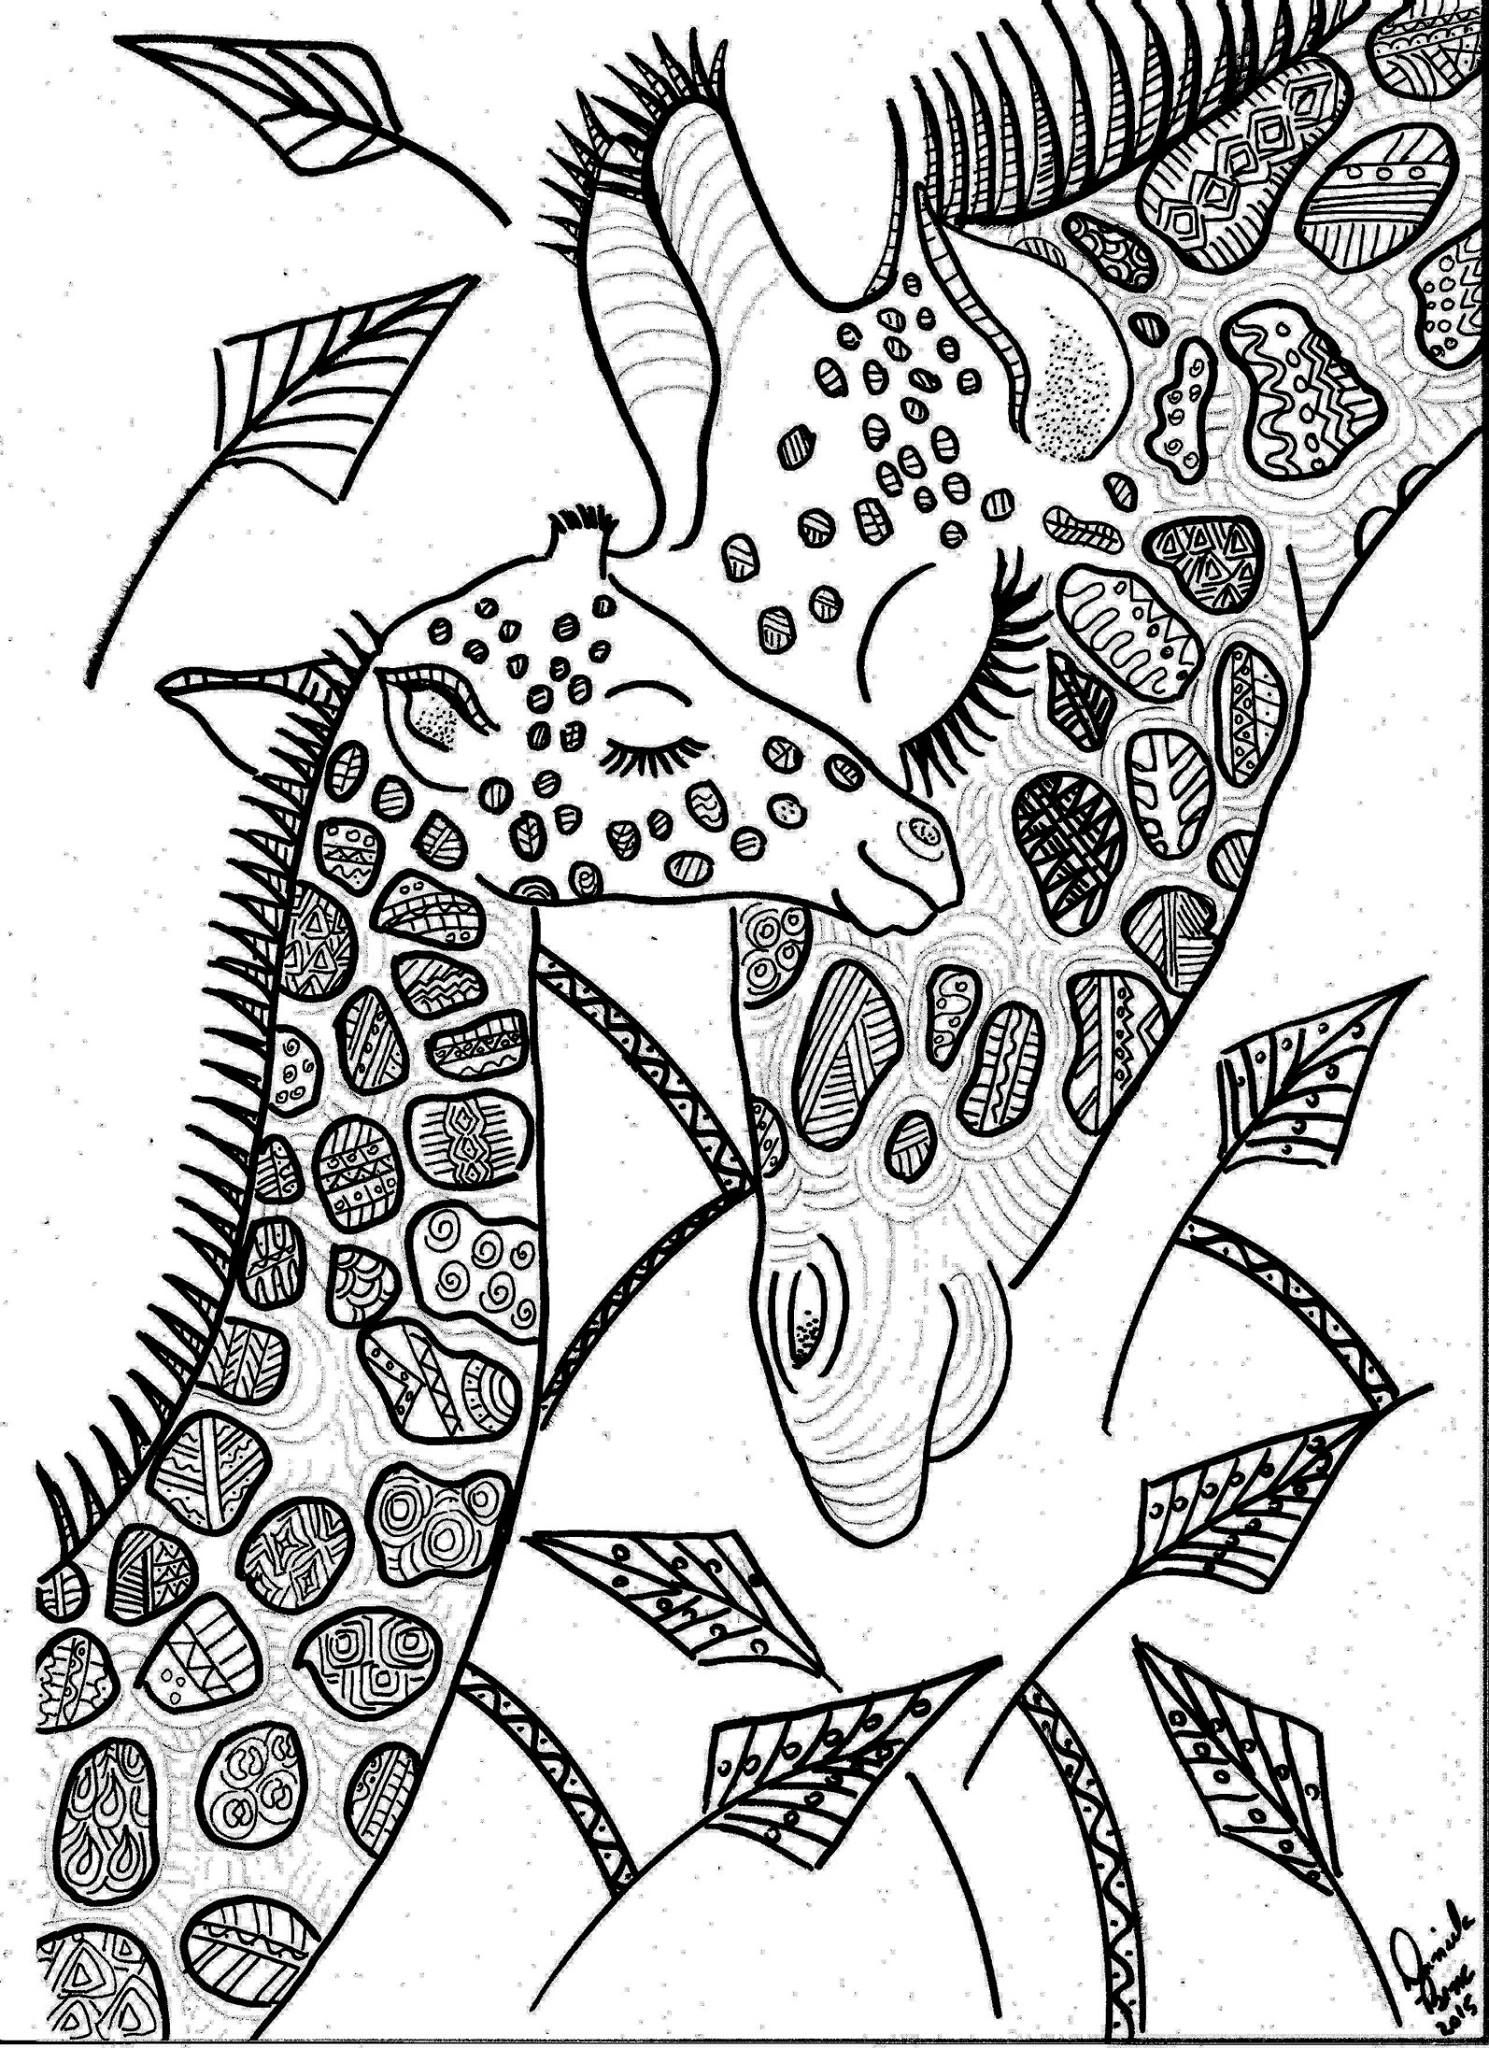 Gorgeous giraffes coloring page | Giraffe coloring pages ...